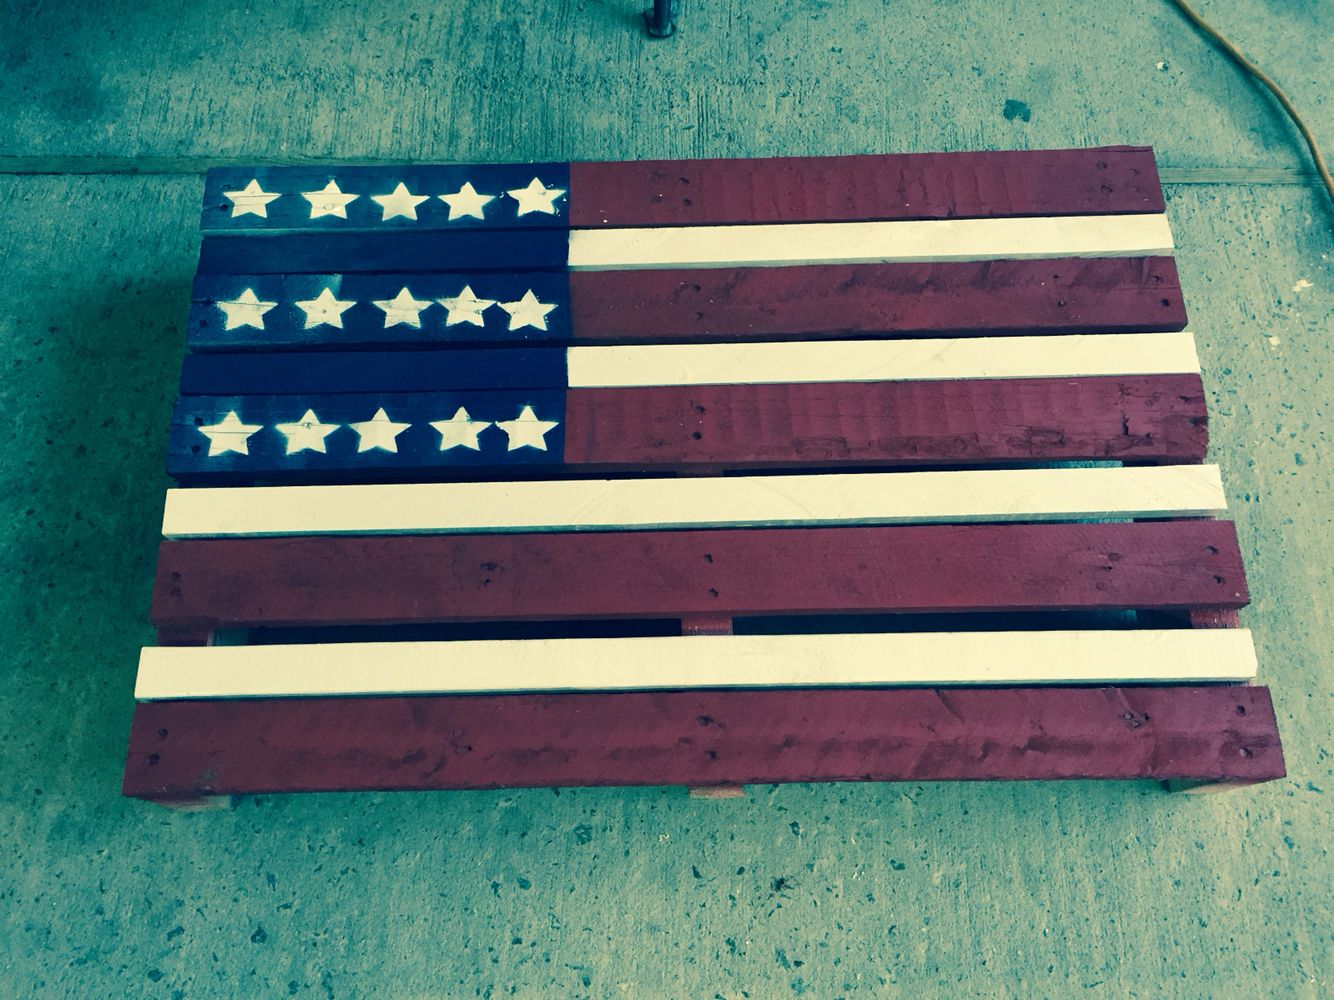 American flag painted on half of a pallet.